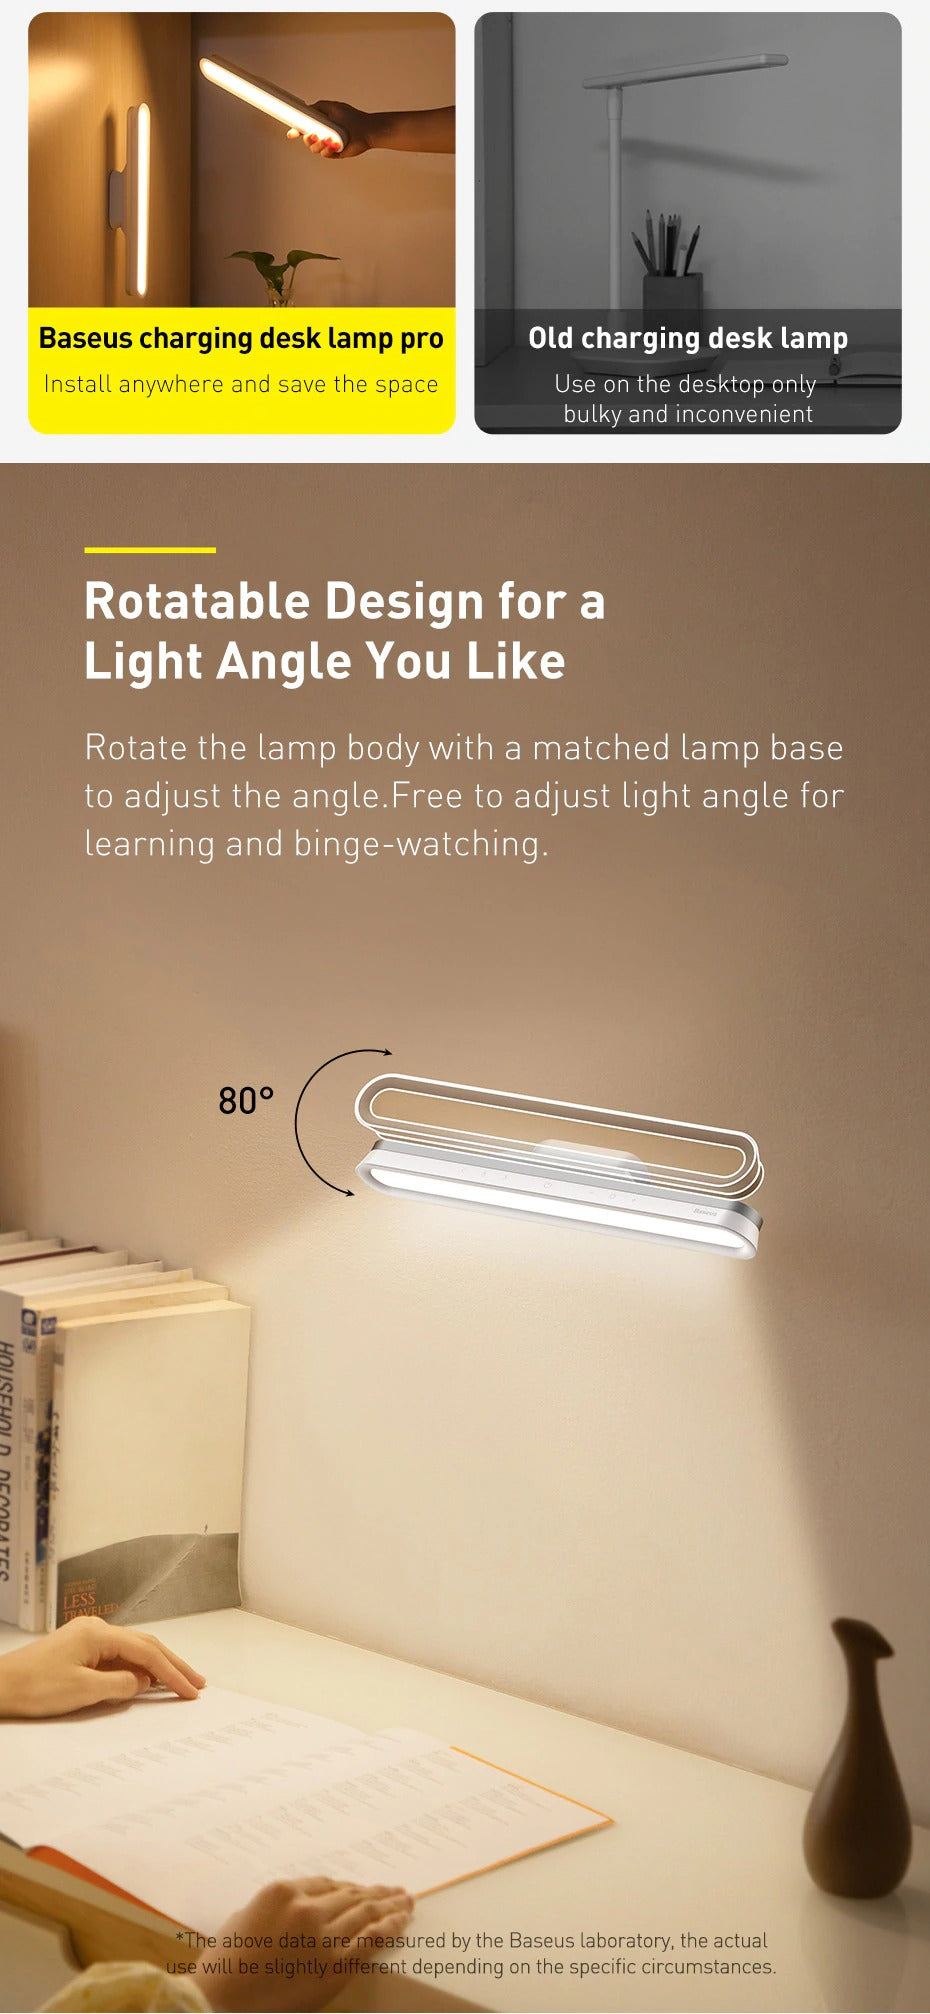 Desk Lamp Feature rotatable design for a light angle you like